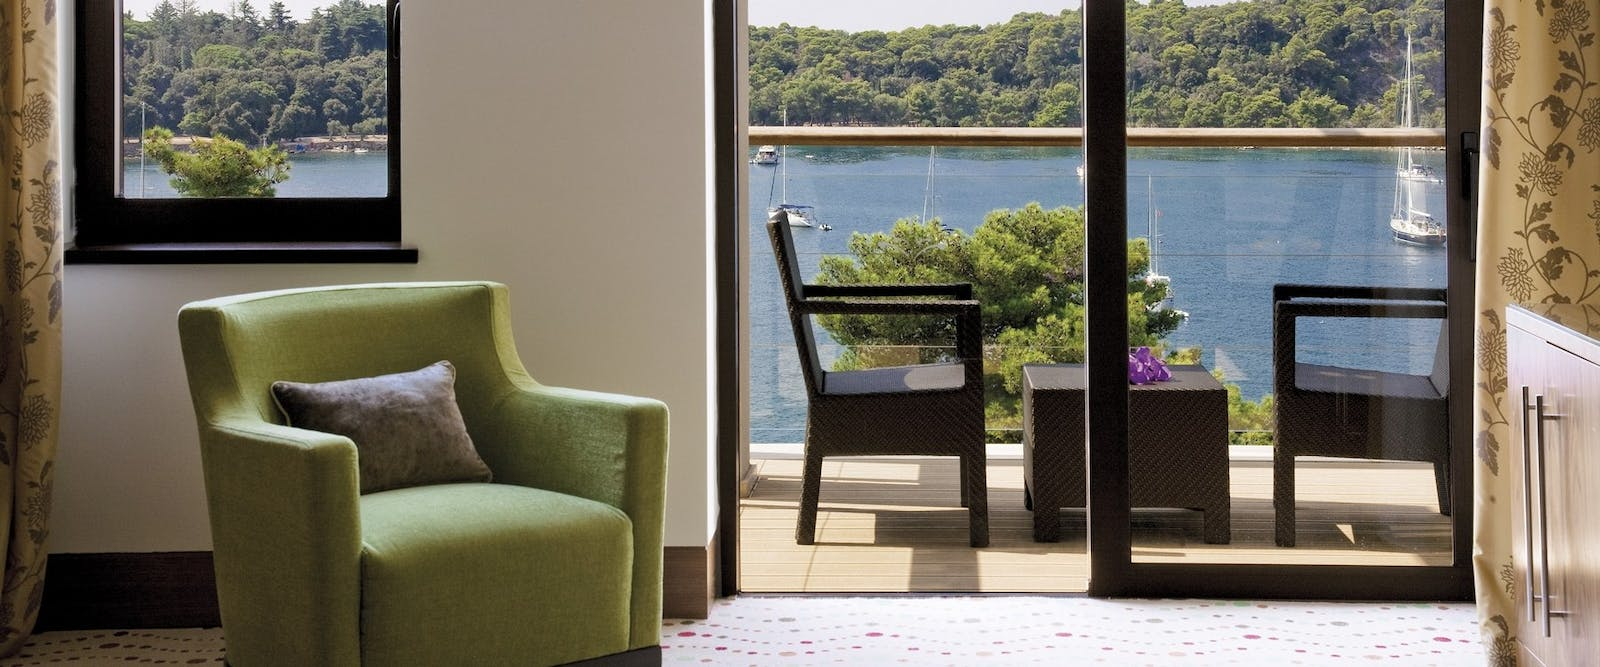 Bedroom with Beautiful View at Hotel Monte Mulini, Croatia